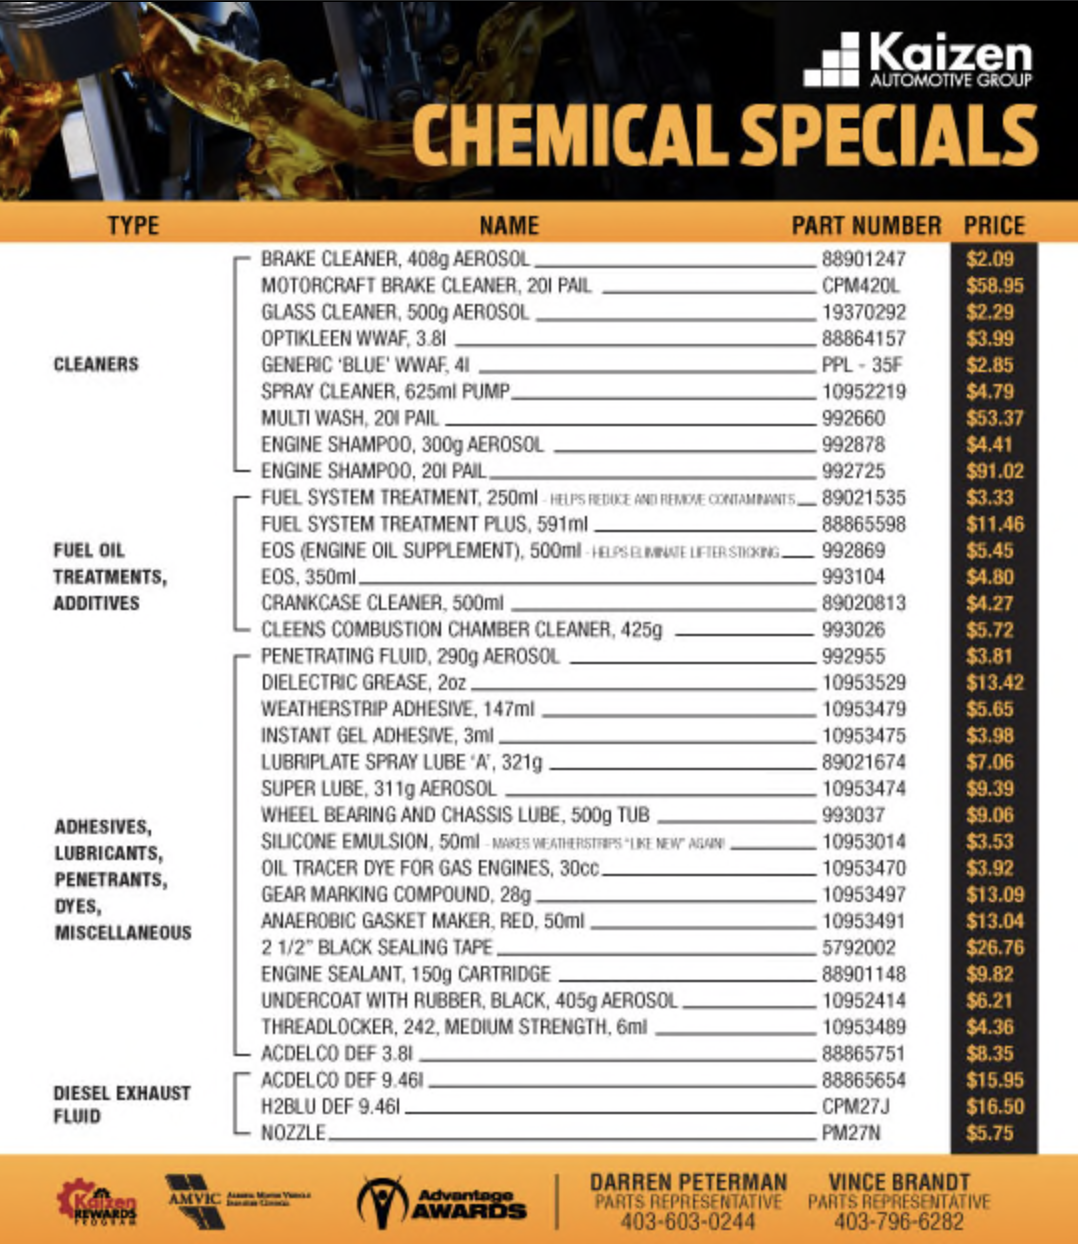 Chemical Specials